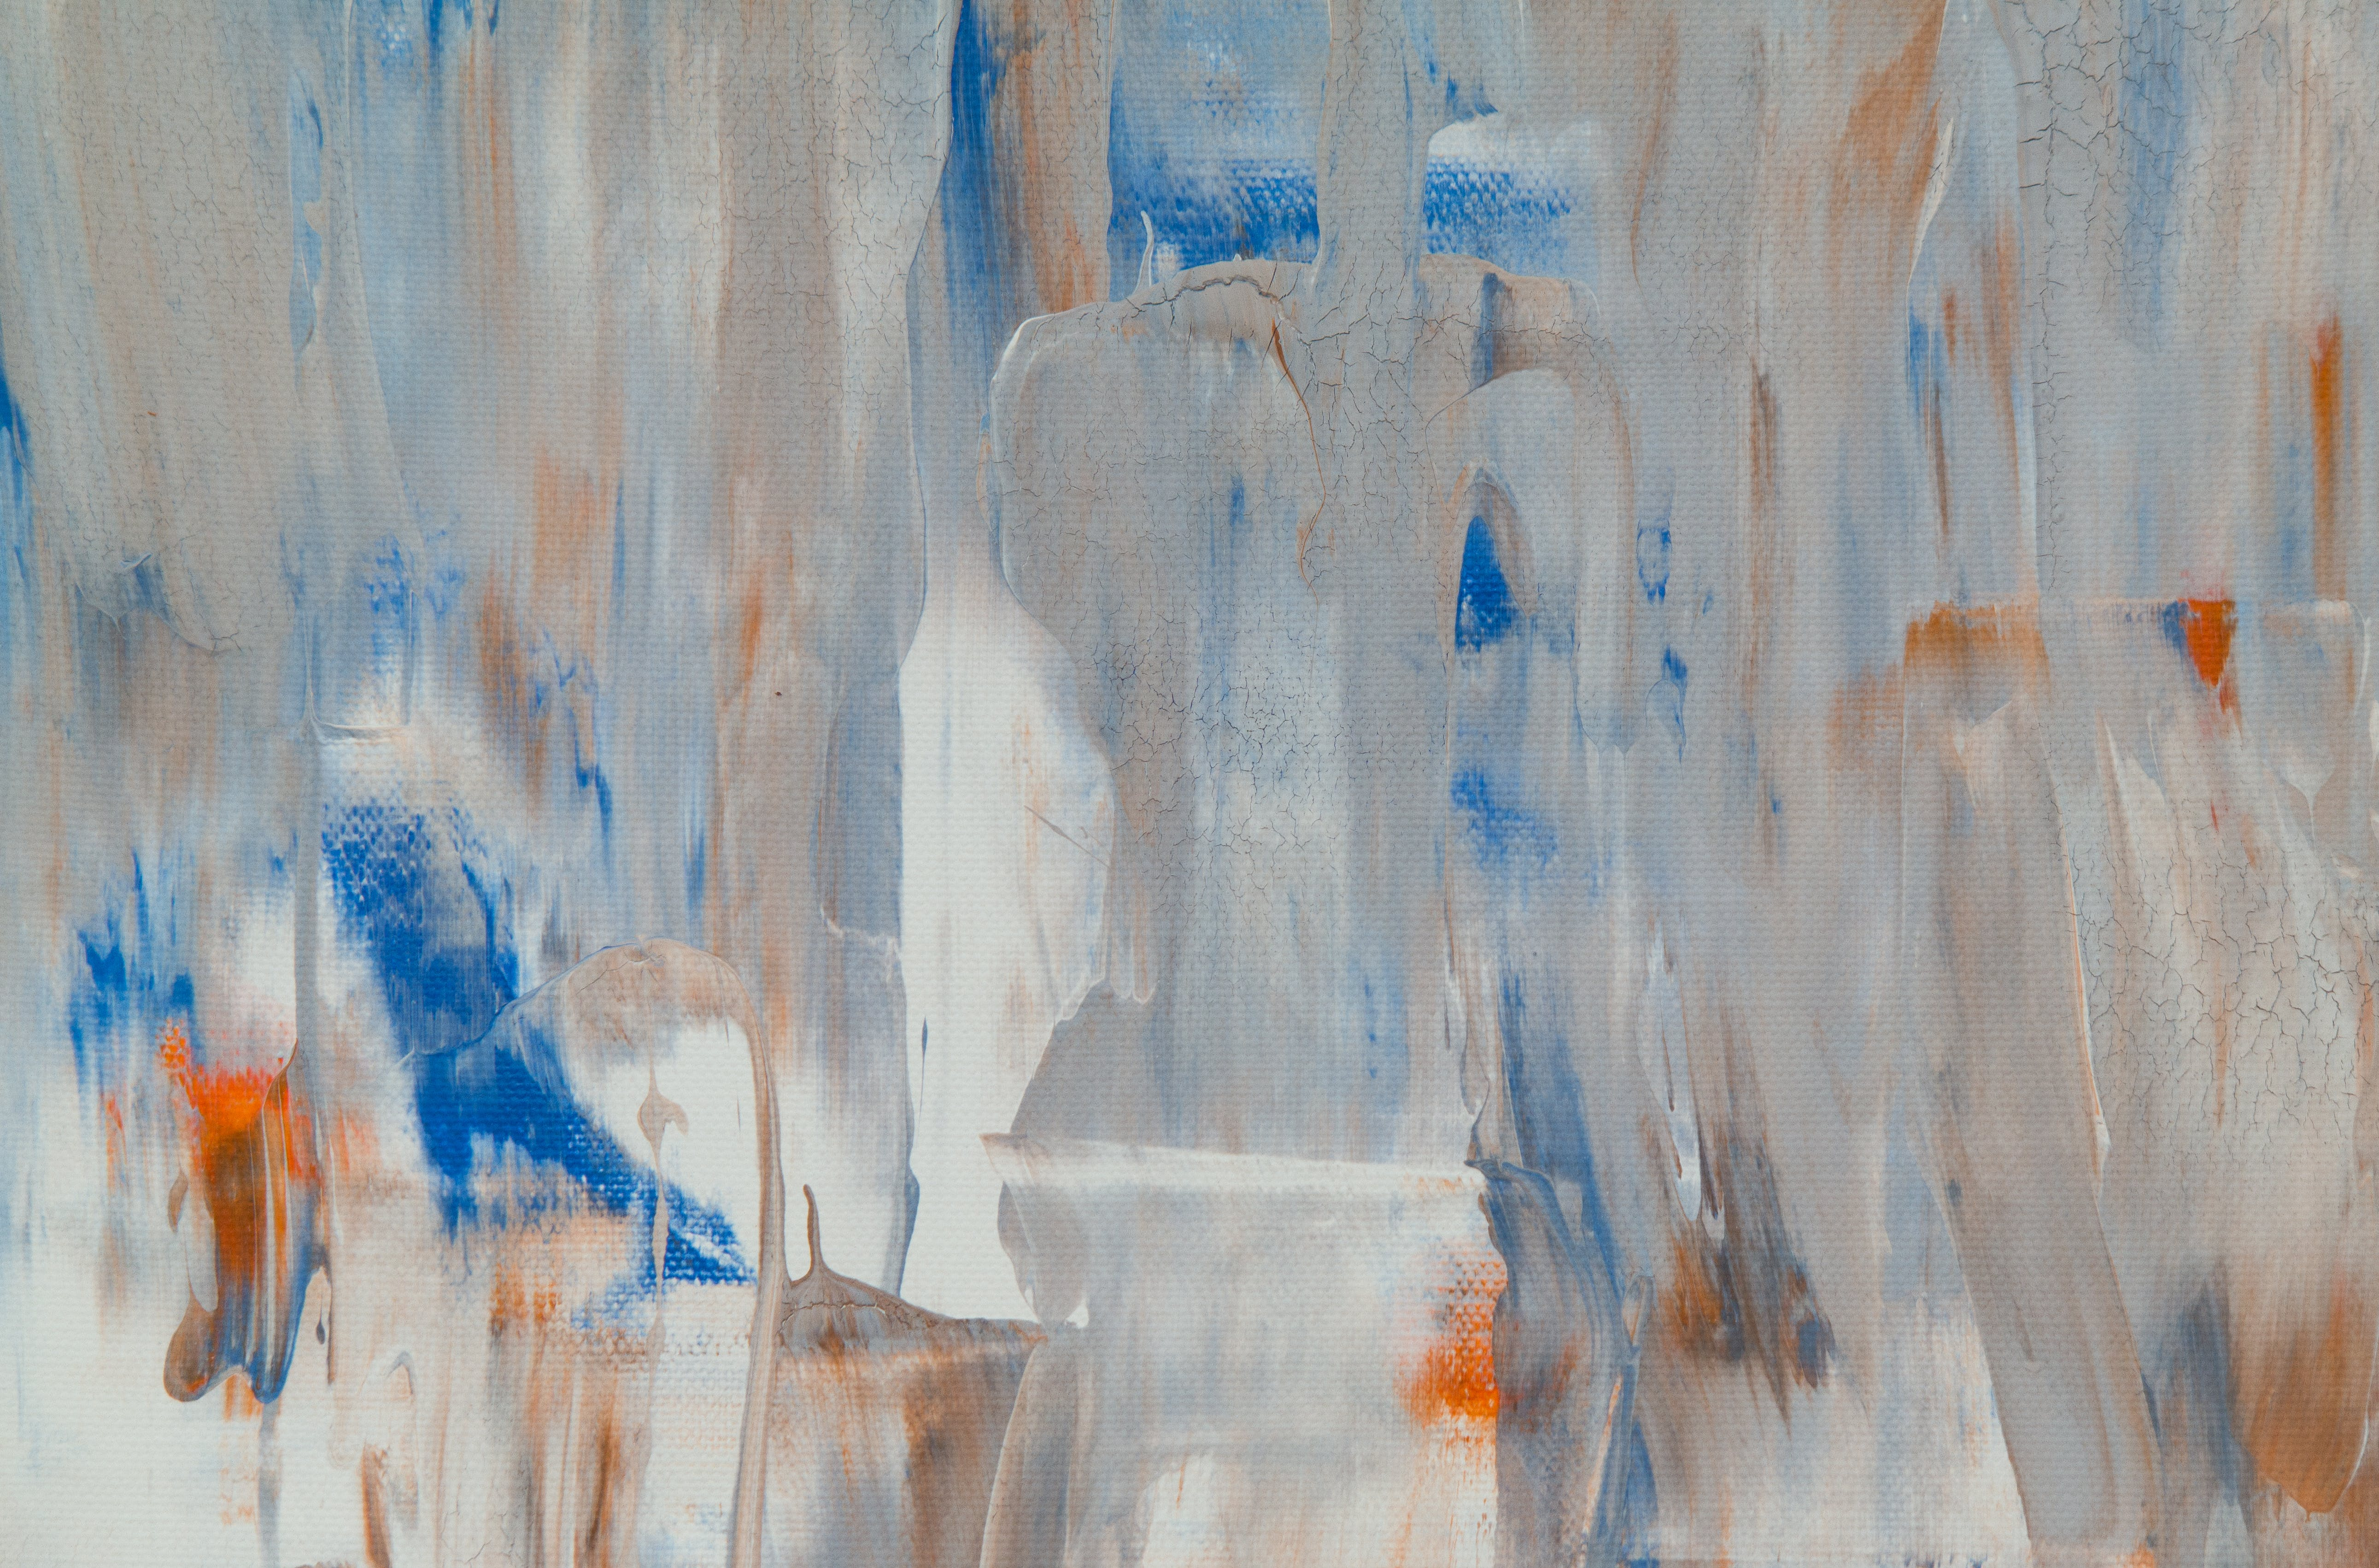 White, Blue, and Orange Abstract Painting